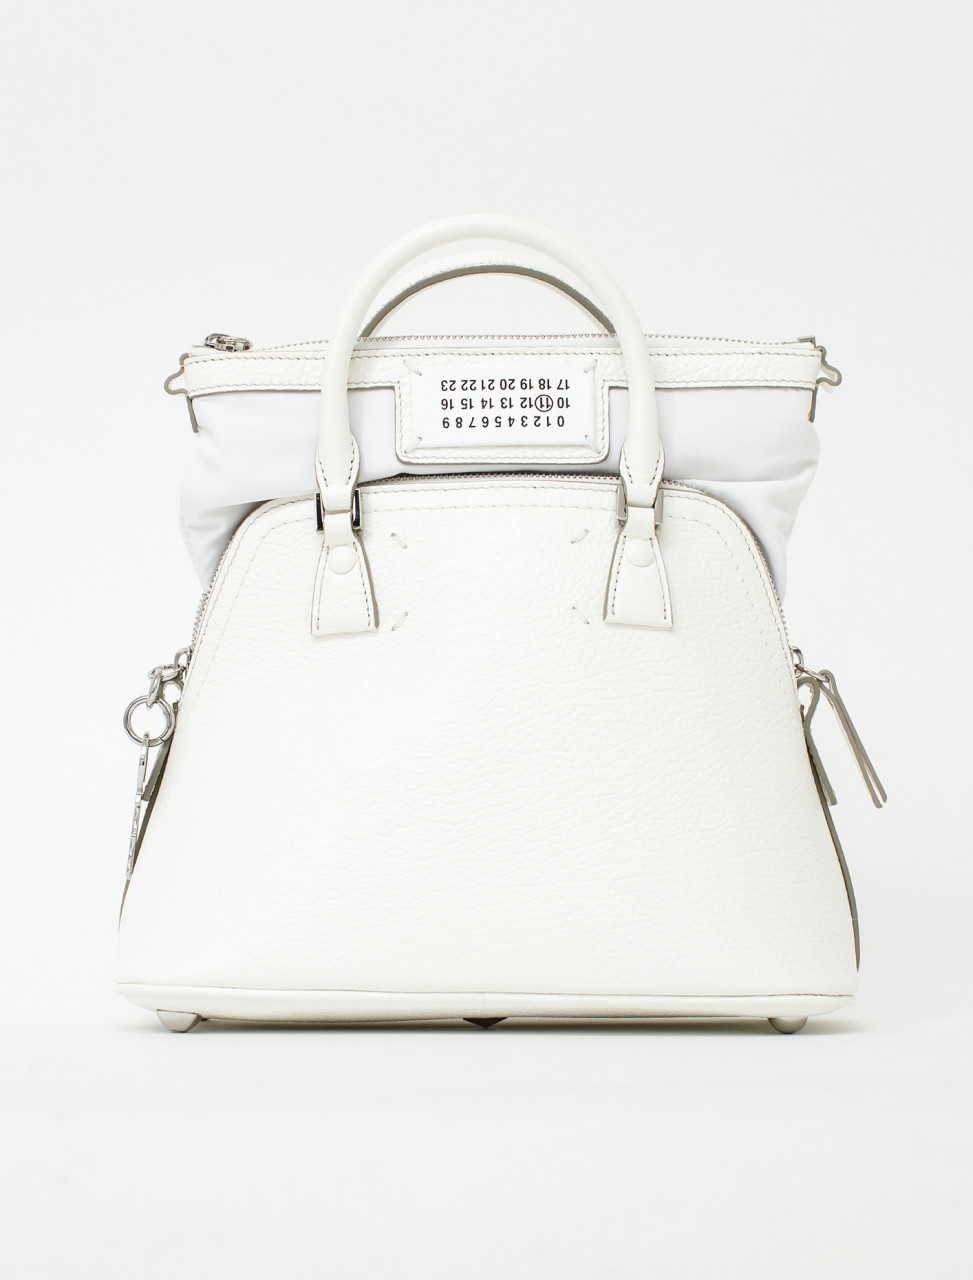 5AC Handbag in White